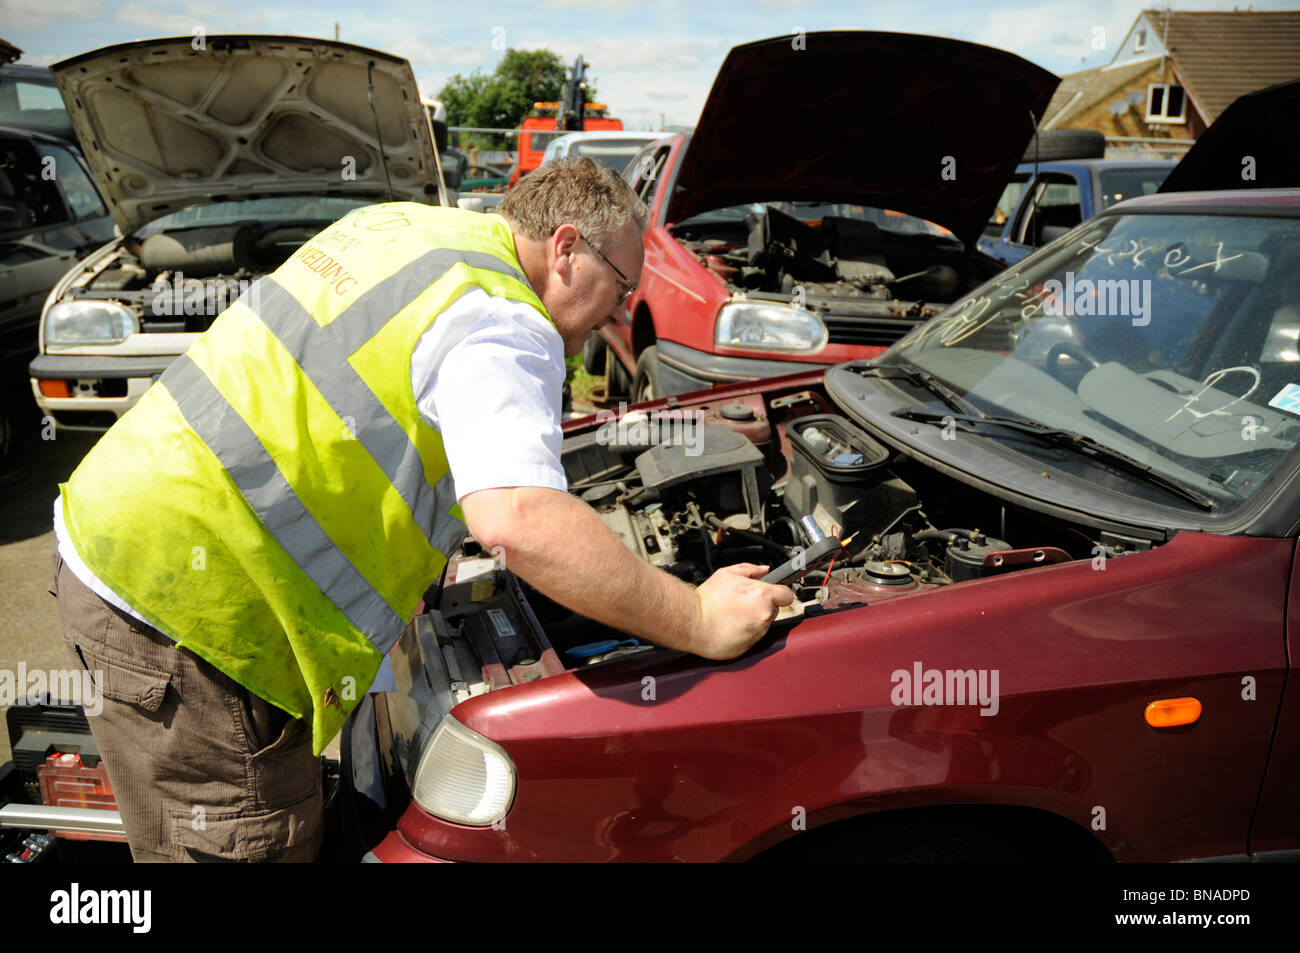 Man wearing hi-vis vest inspecting engine in a car in breakers yard. - Stock Image